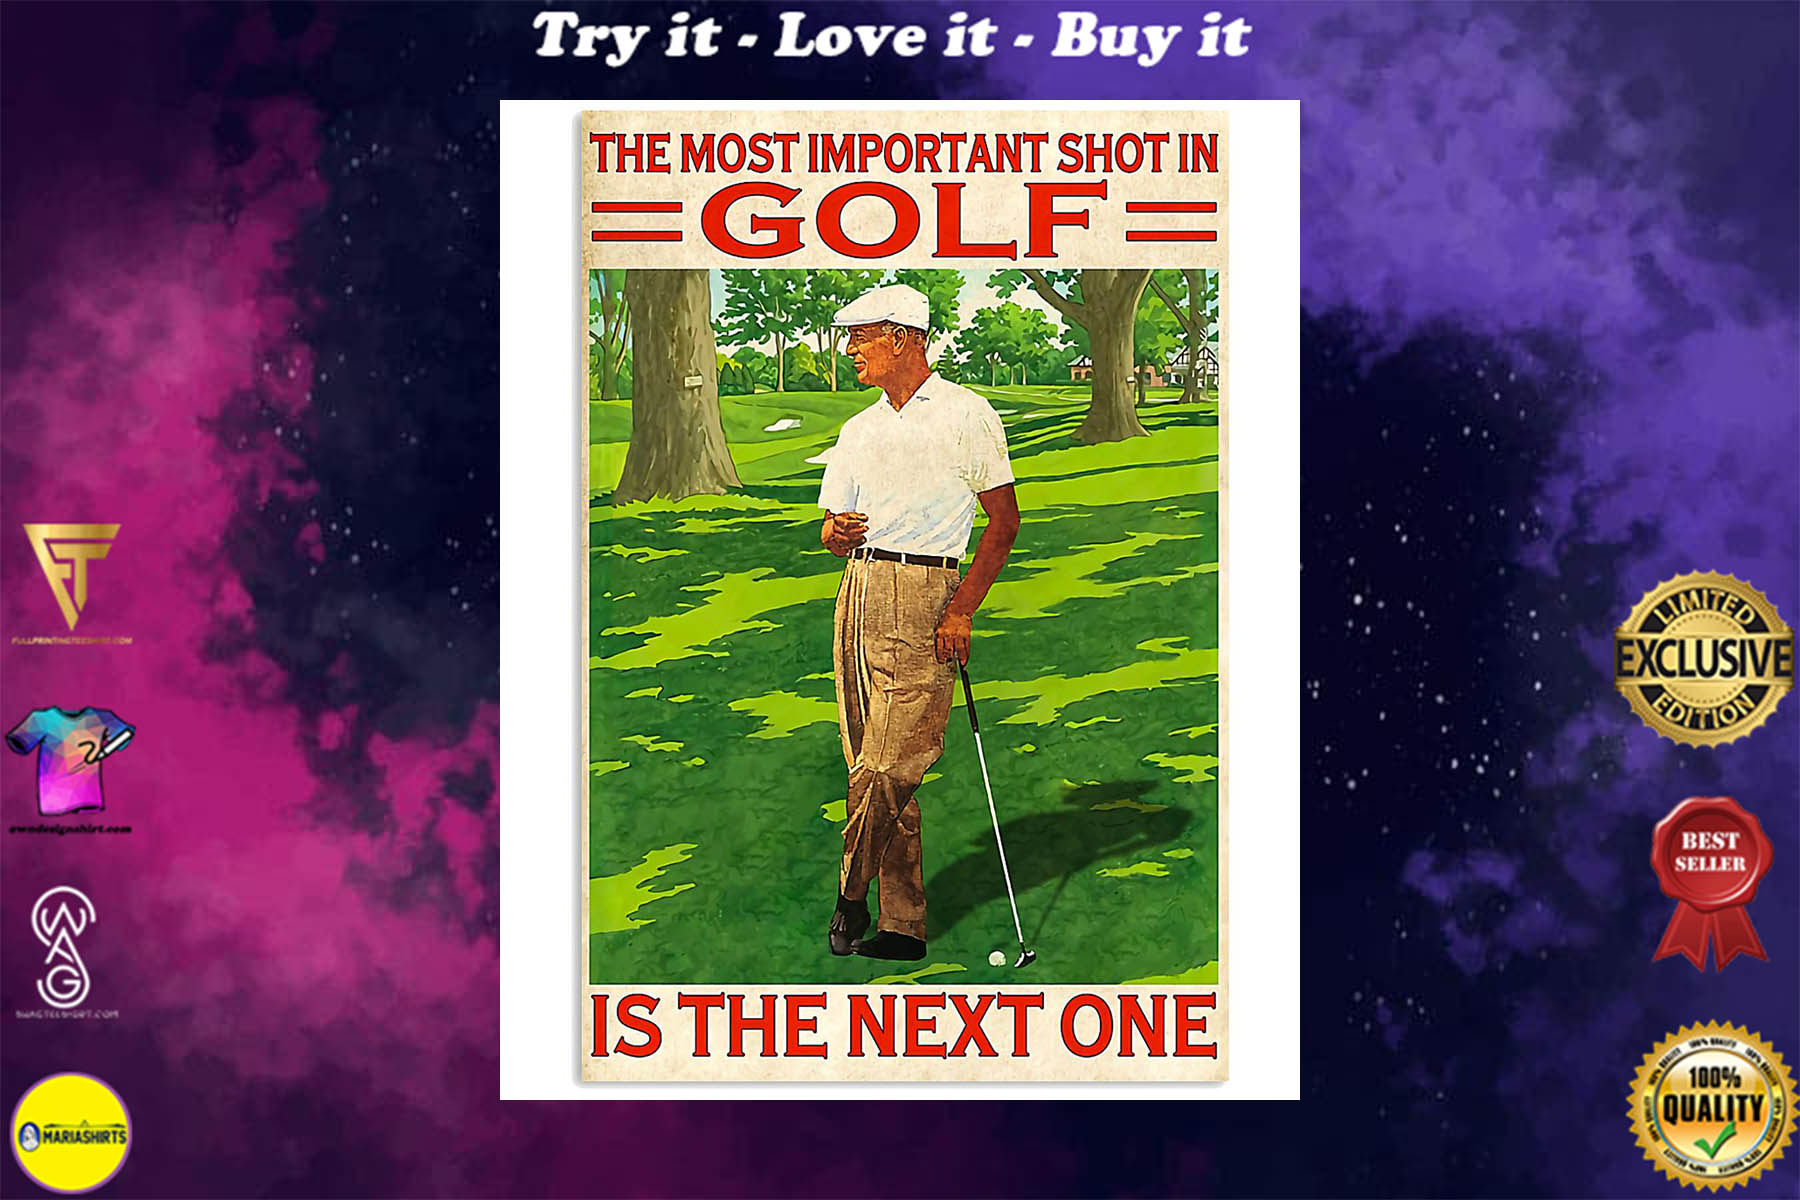 the most important shot in golf is the next one retro poster